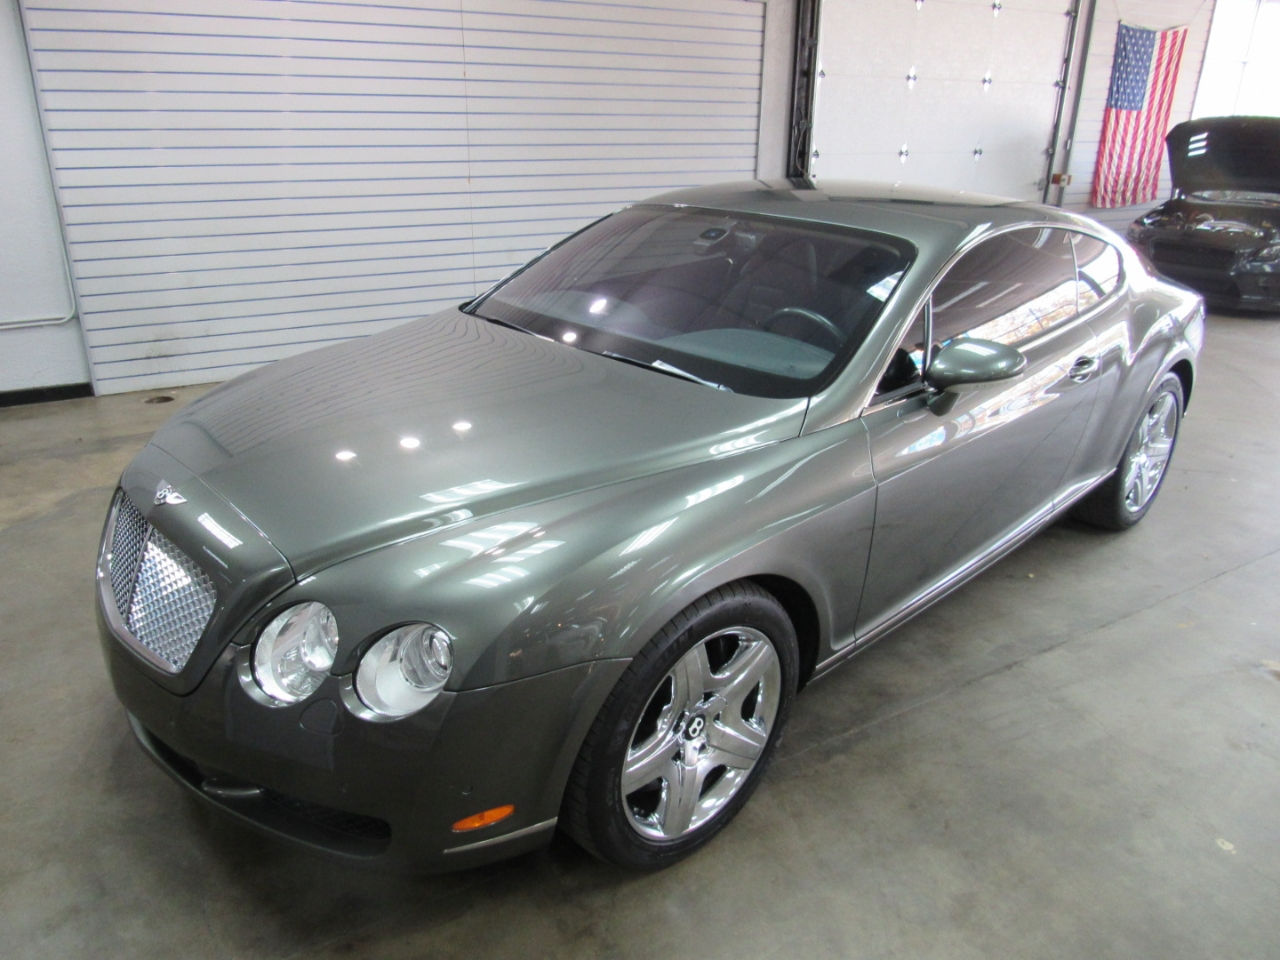 Used 2005 Bentley Continental Gt Coupe For Sale In Denver Co 80220 Weisco Motorcars Ltd